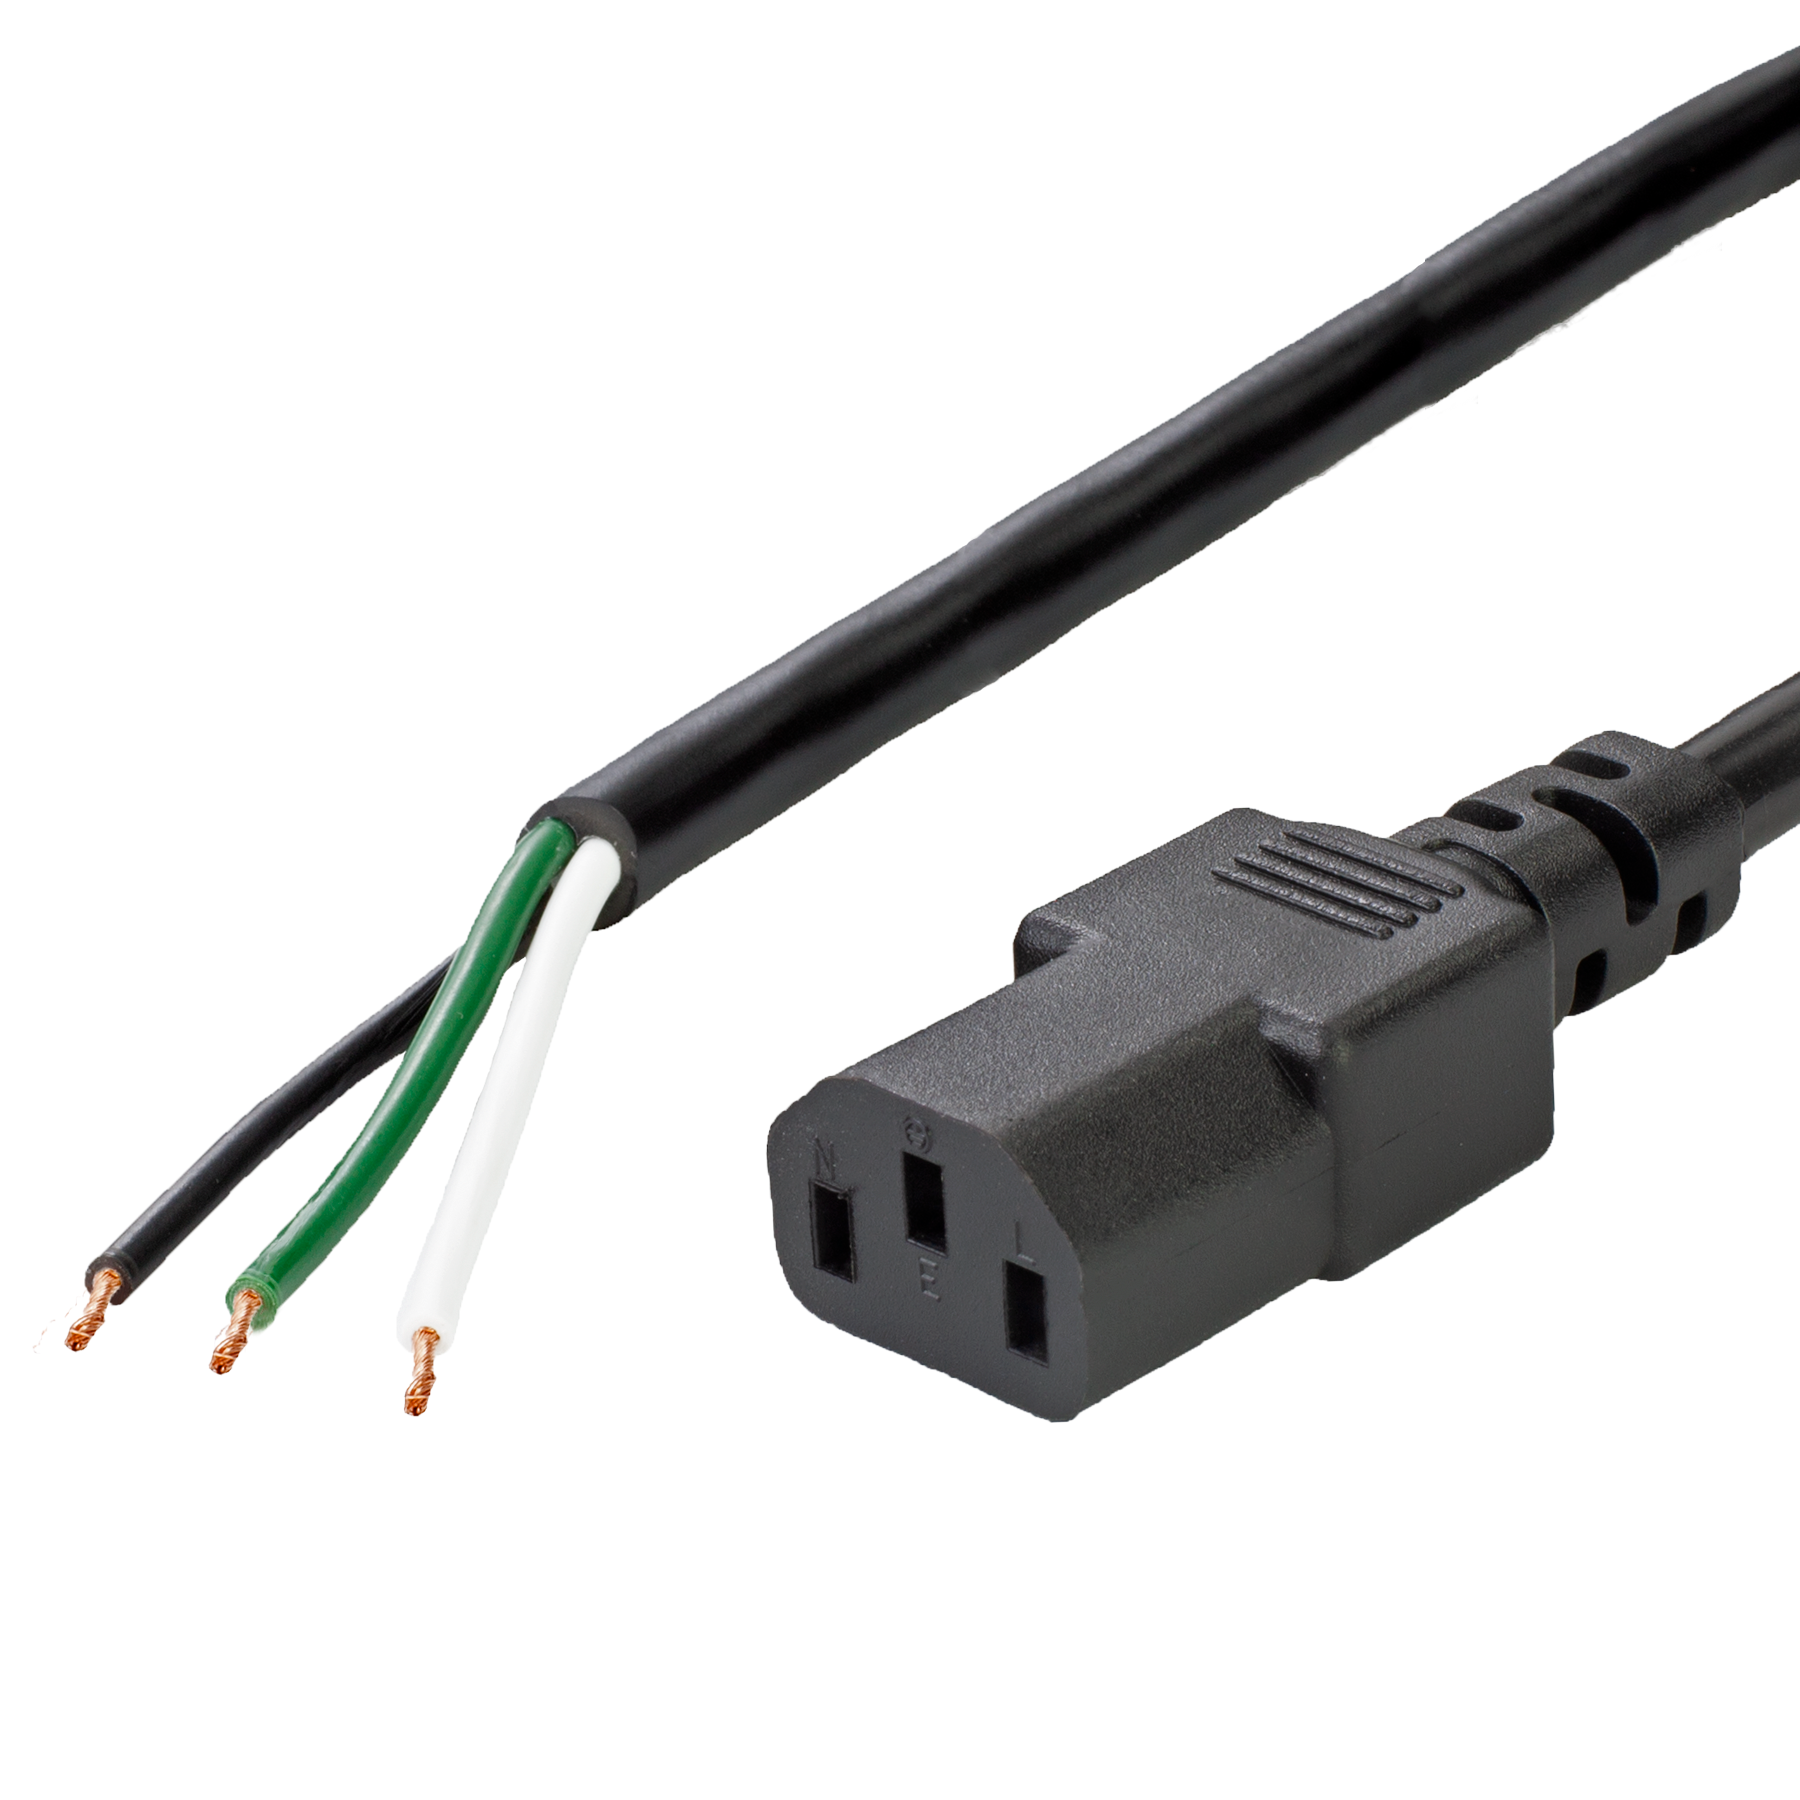 10A OPEN to IEC 60320 C13 Power Cords - BLACK